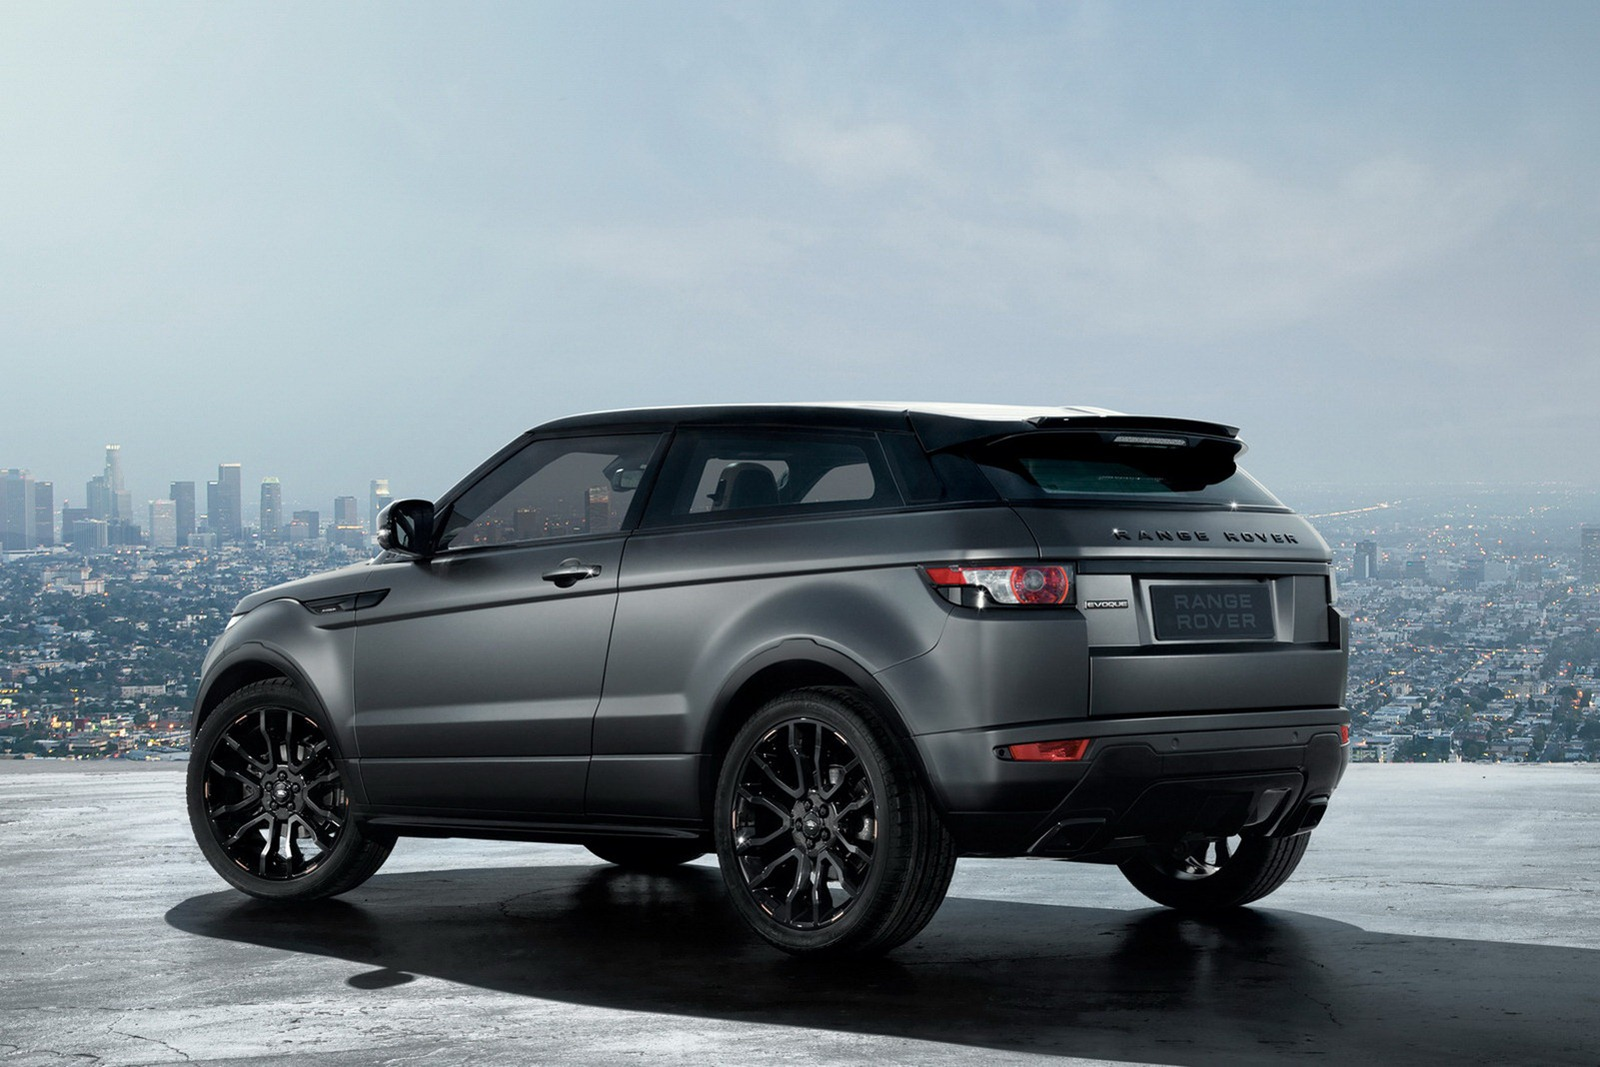 range rover evoque victoria beckham edition autoevolution. Black Bedroom Furniture Sets. Home Design Ideas